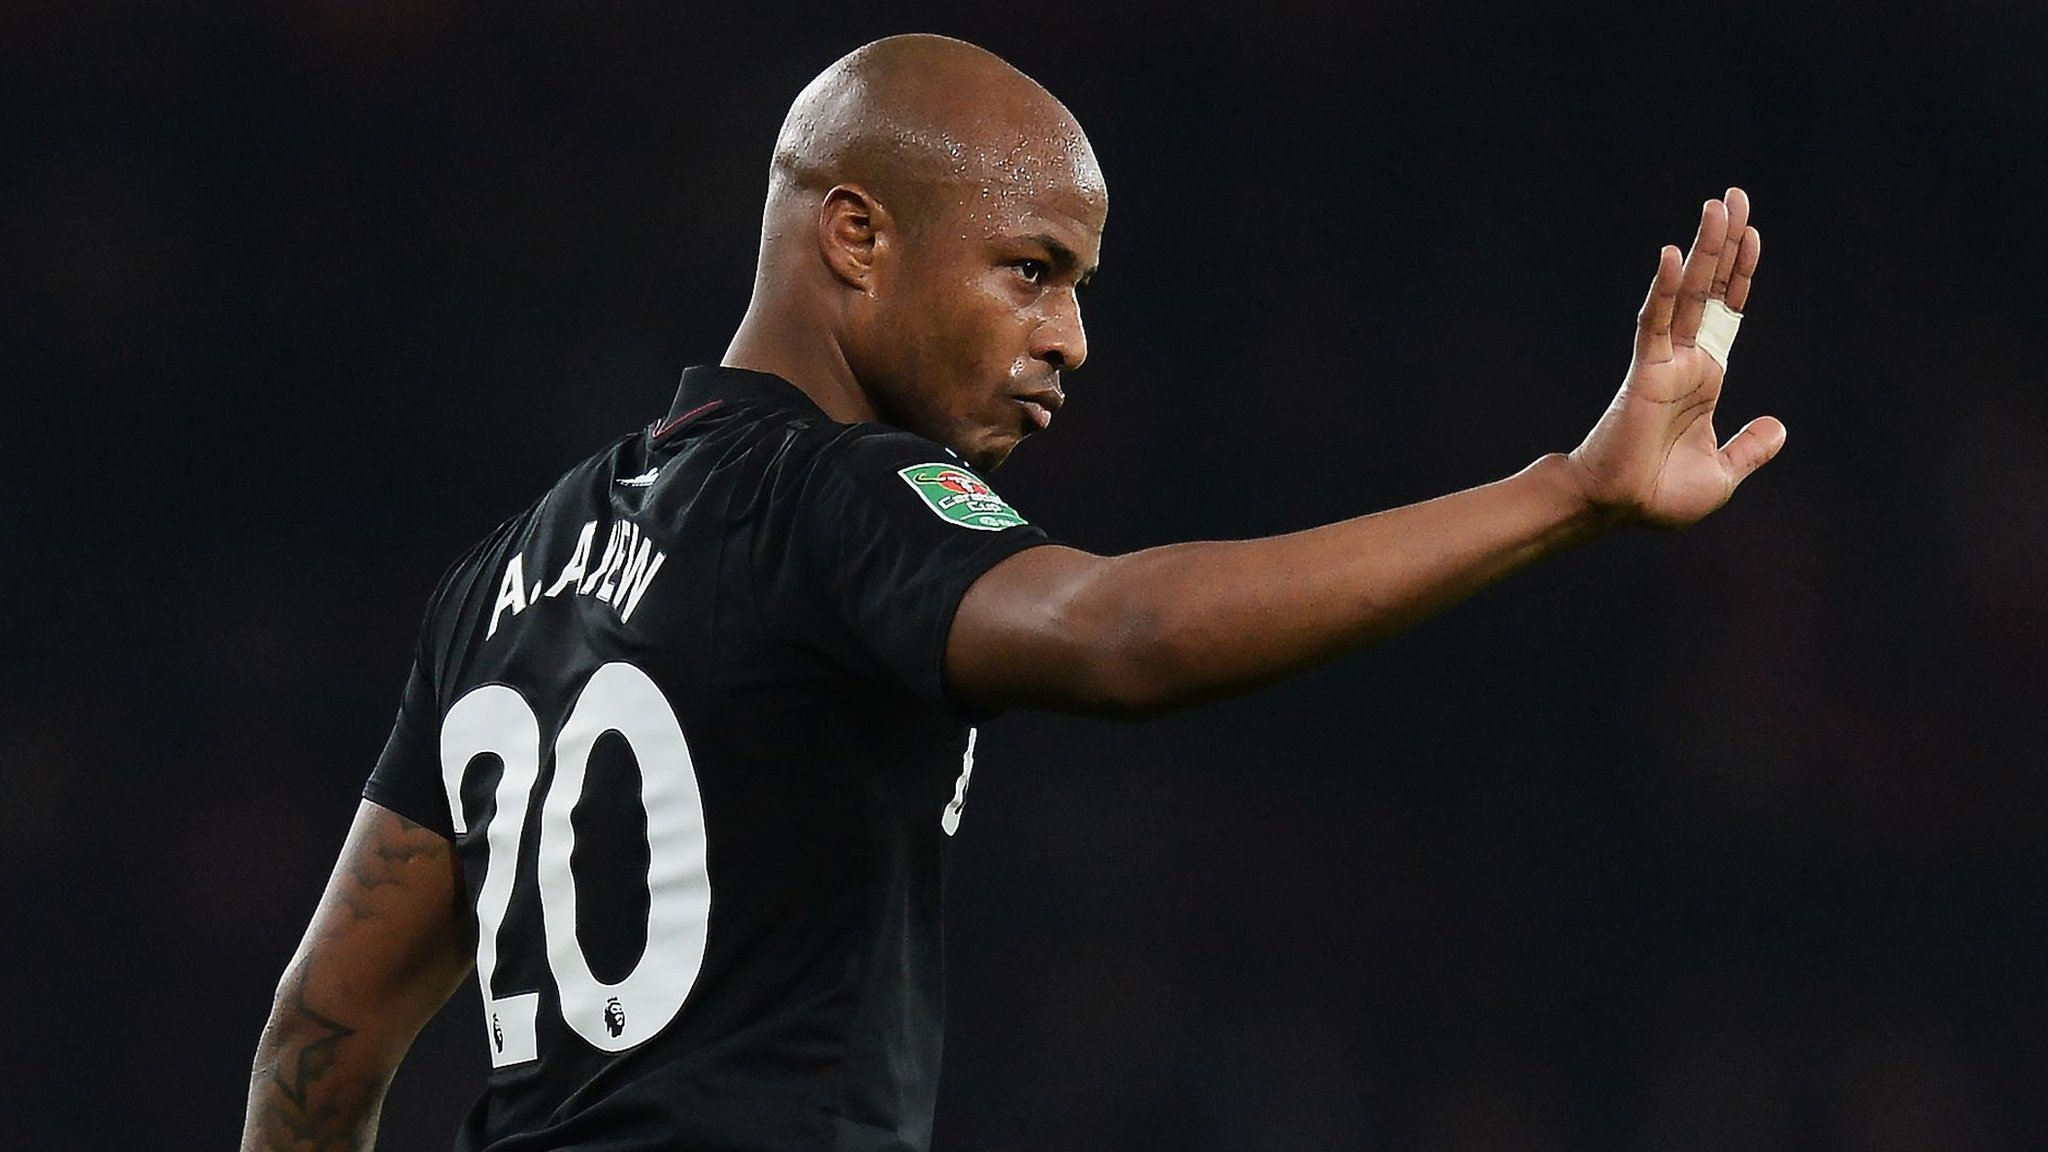 Andre Ayew: West Ham United reject Swansea City bid for forward